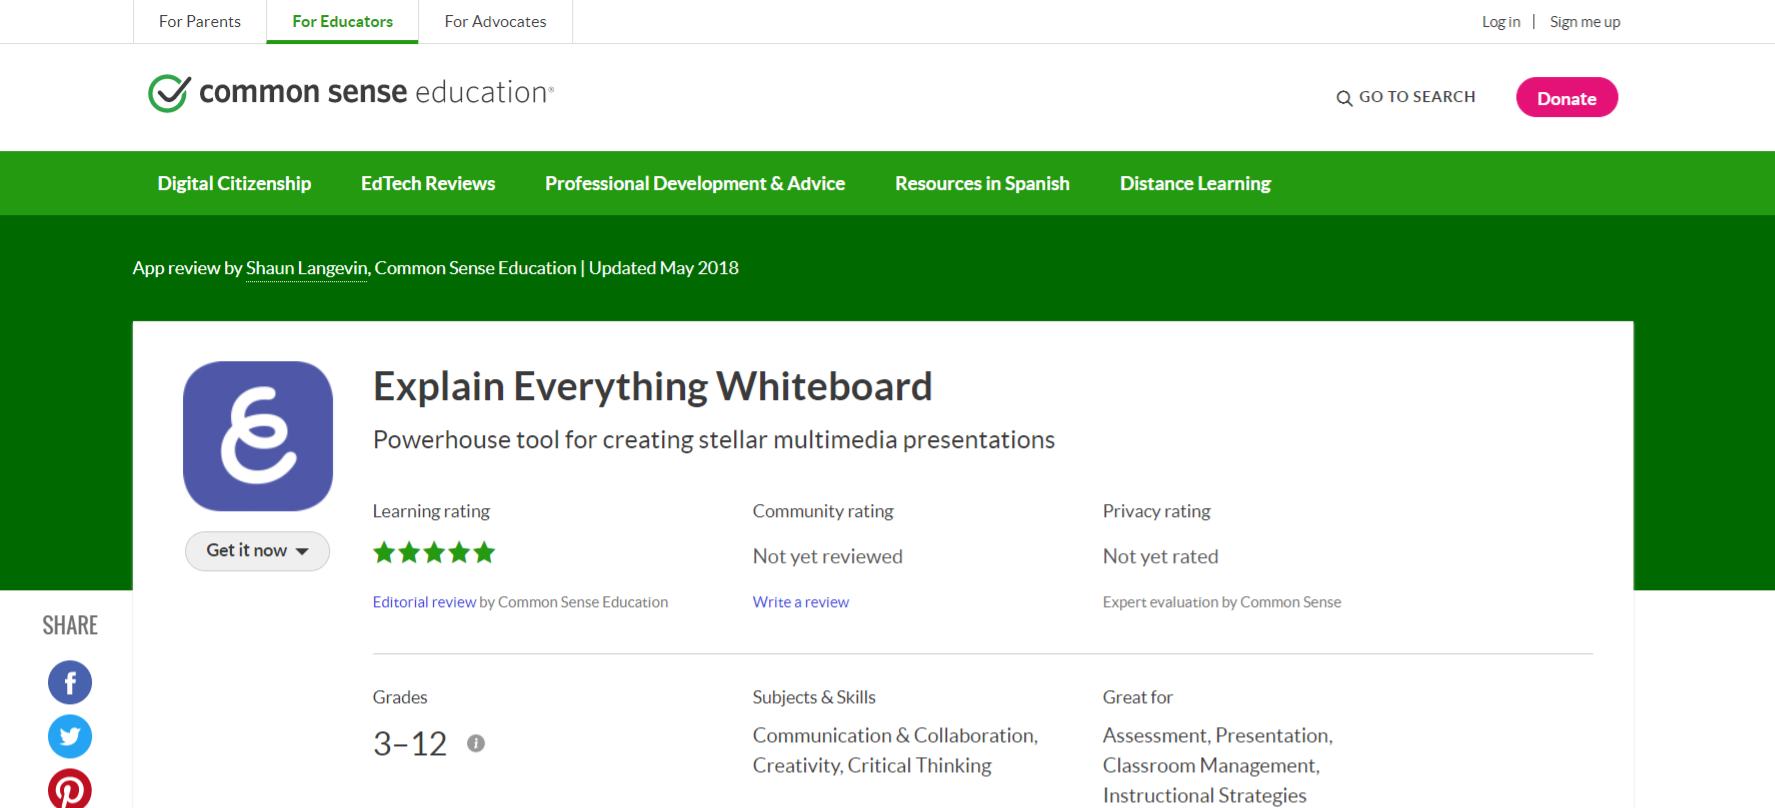 Explain everything whiteboard: Homeschooling app and tool